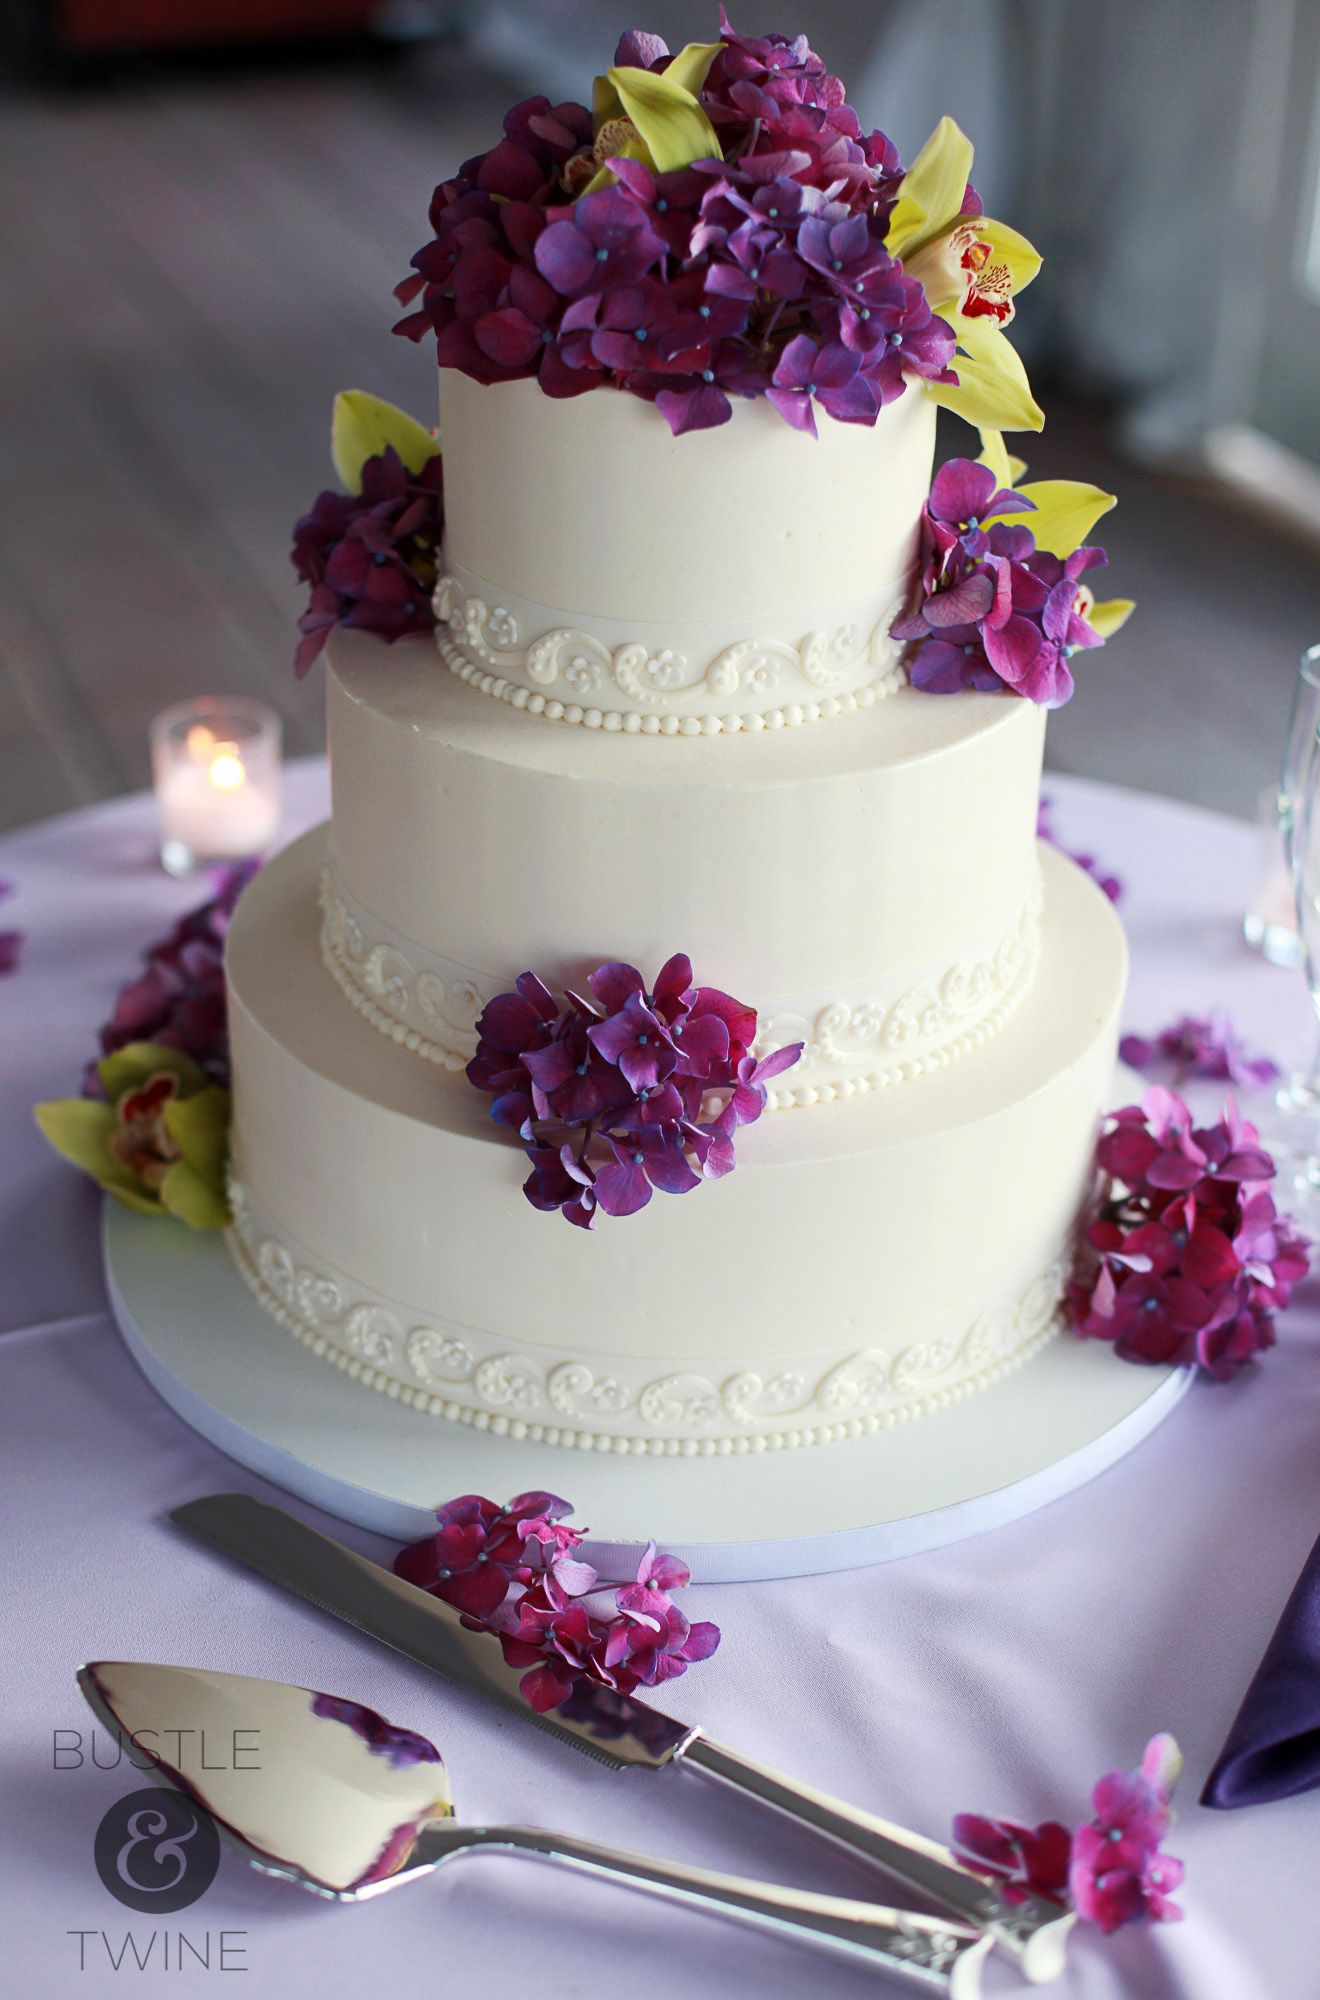 Purple Flowers On A White Cake Photo By Bustle Twine